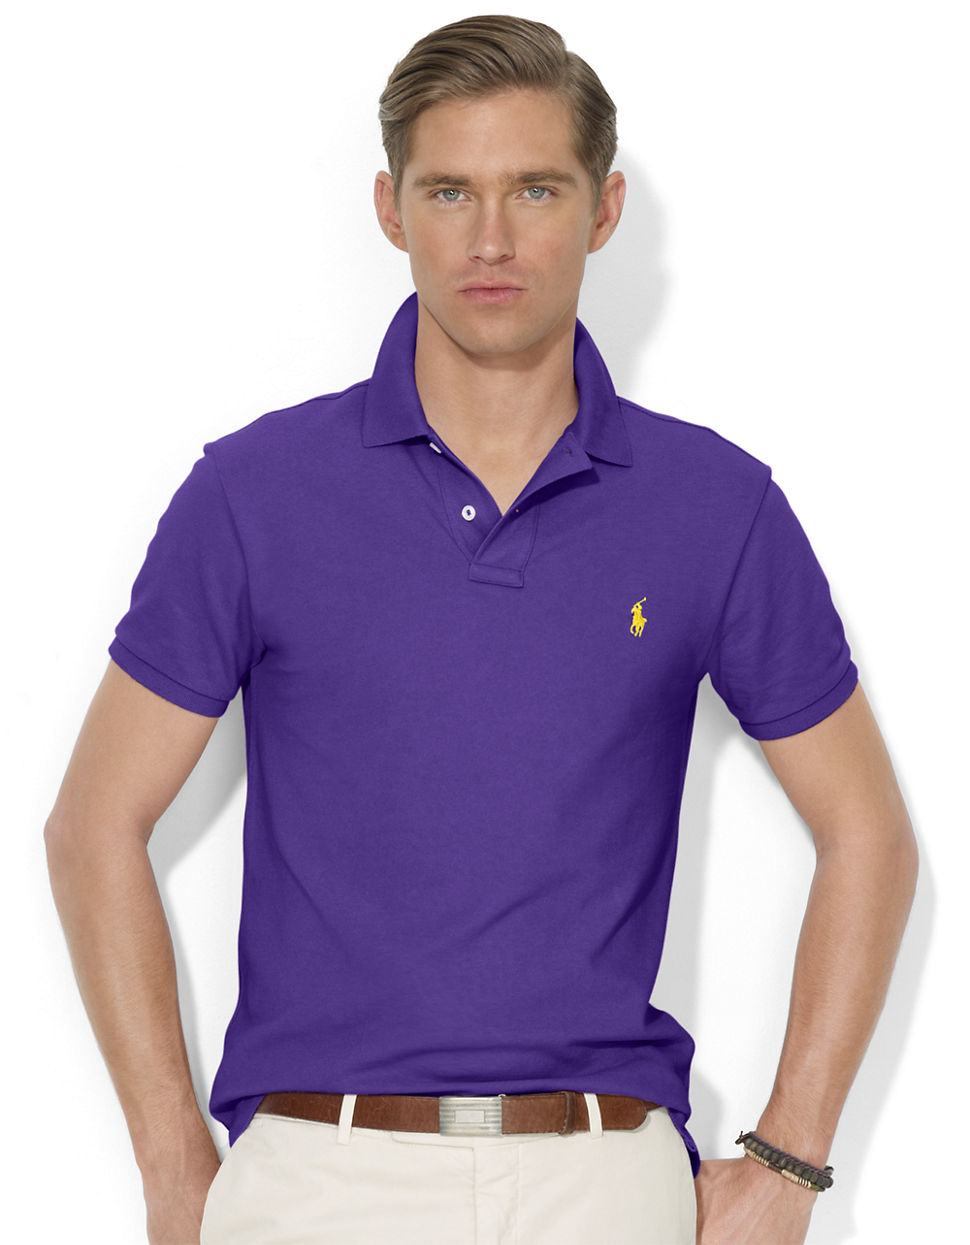 polo ralph lauren slim fit mesh polo shirt in purple for men lyst. Black Bedroom Furniture Sets. Home Design Ideas